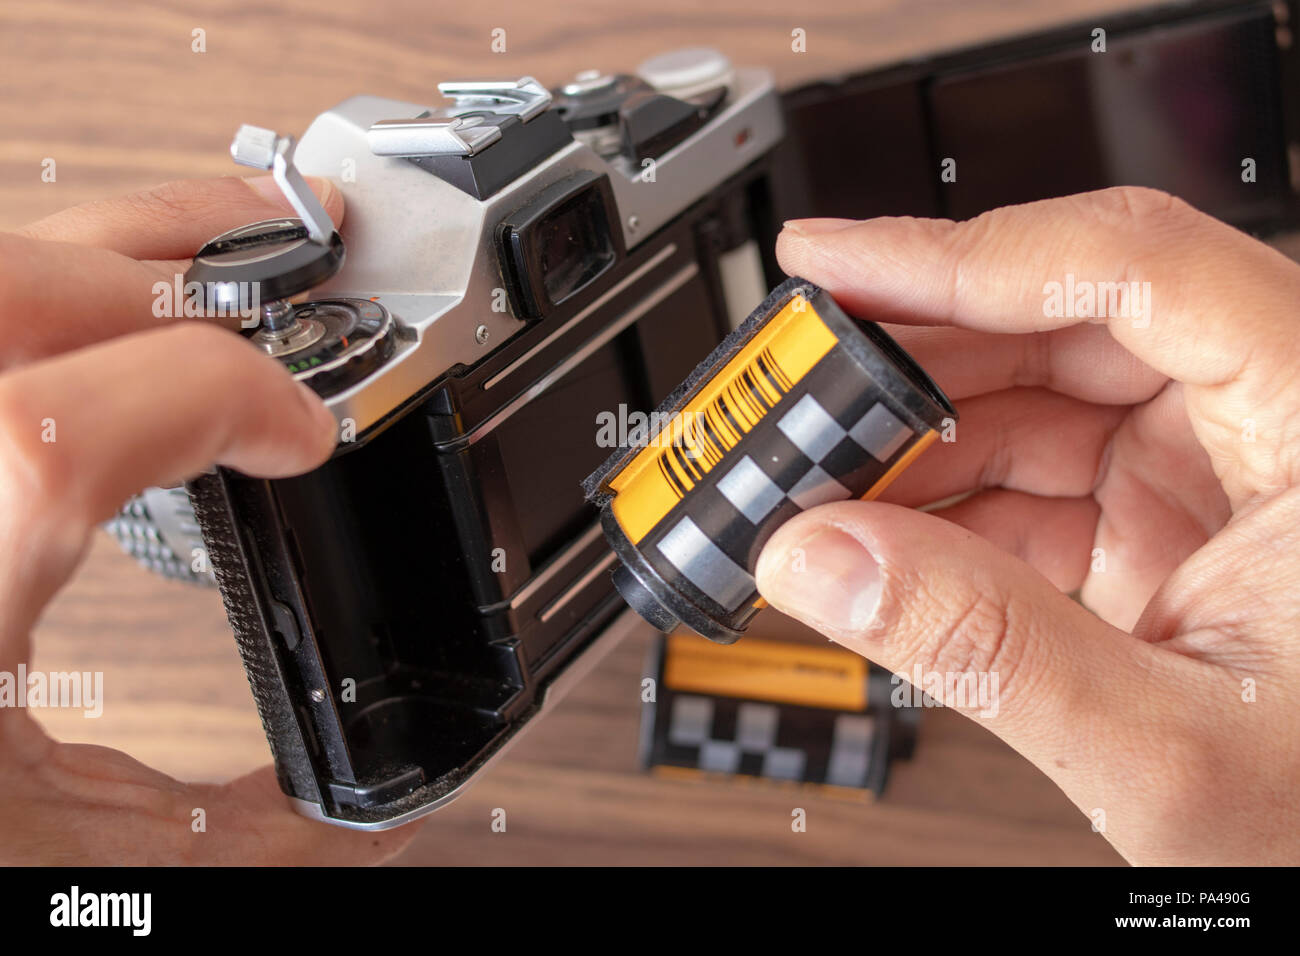 Placing a 35mm film to an analog camera manually - Stock Image